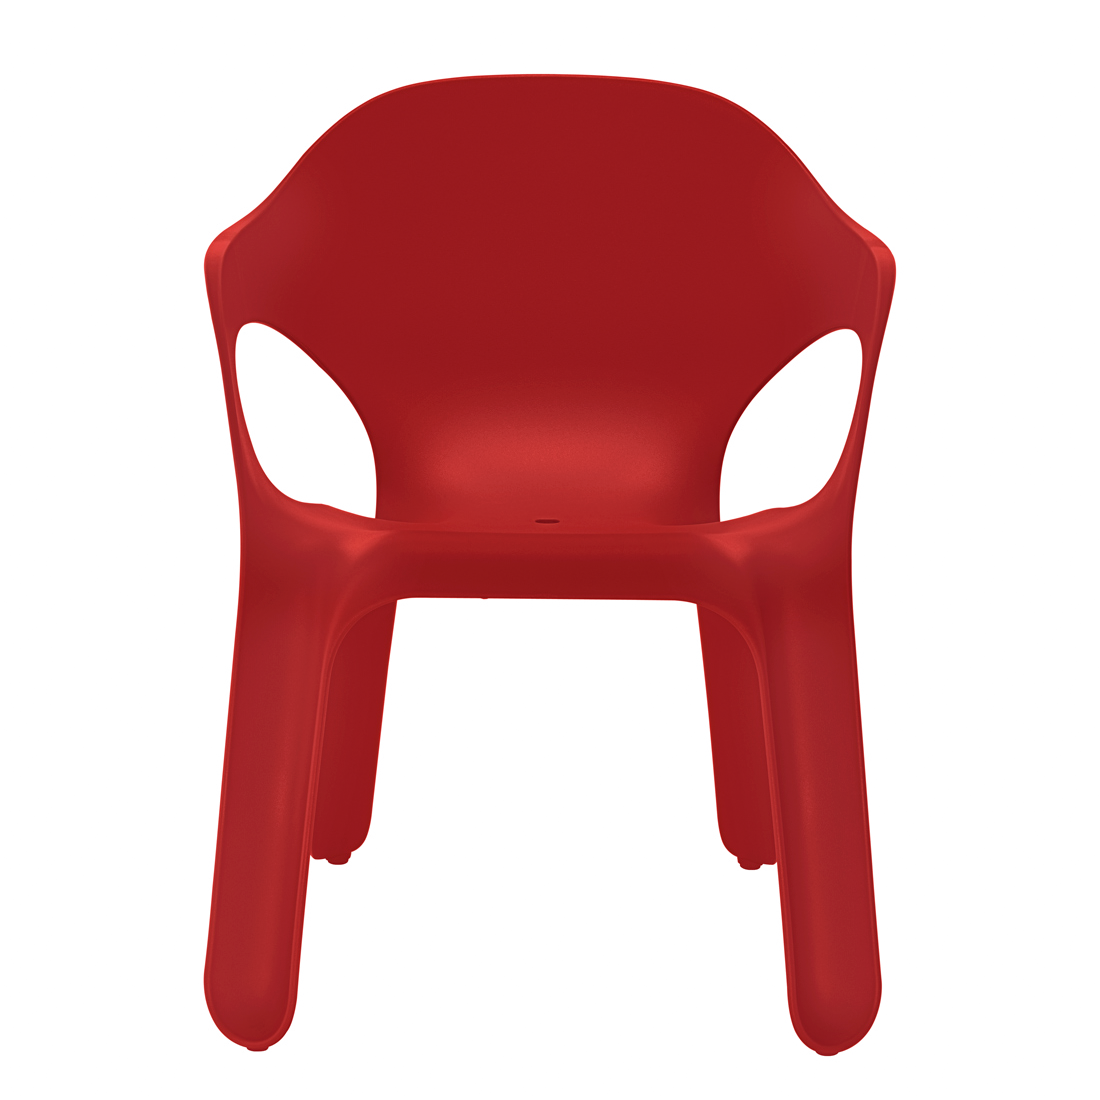 https://www.puurdesign.nu/media/catalog/product/e/a/easy_chair_magis_puur_design_interieur_rood.png